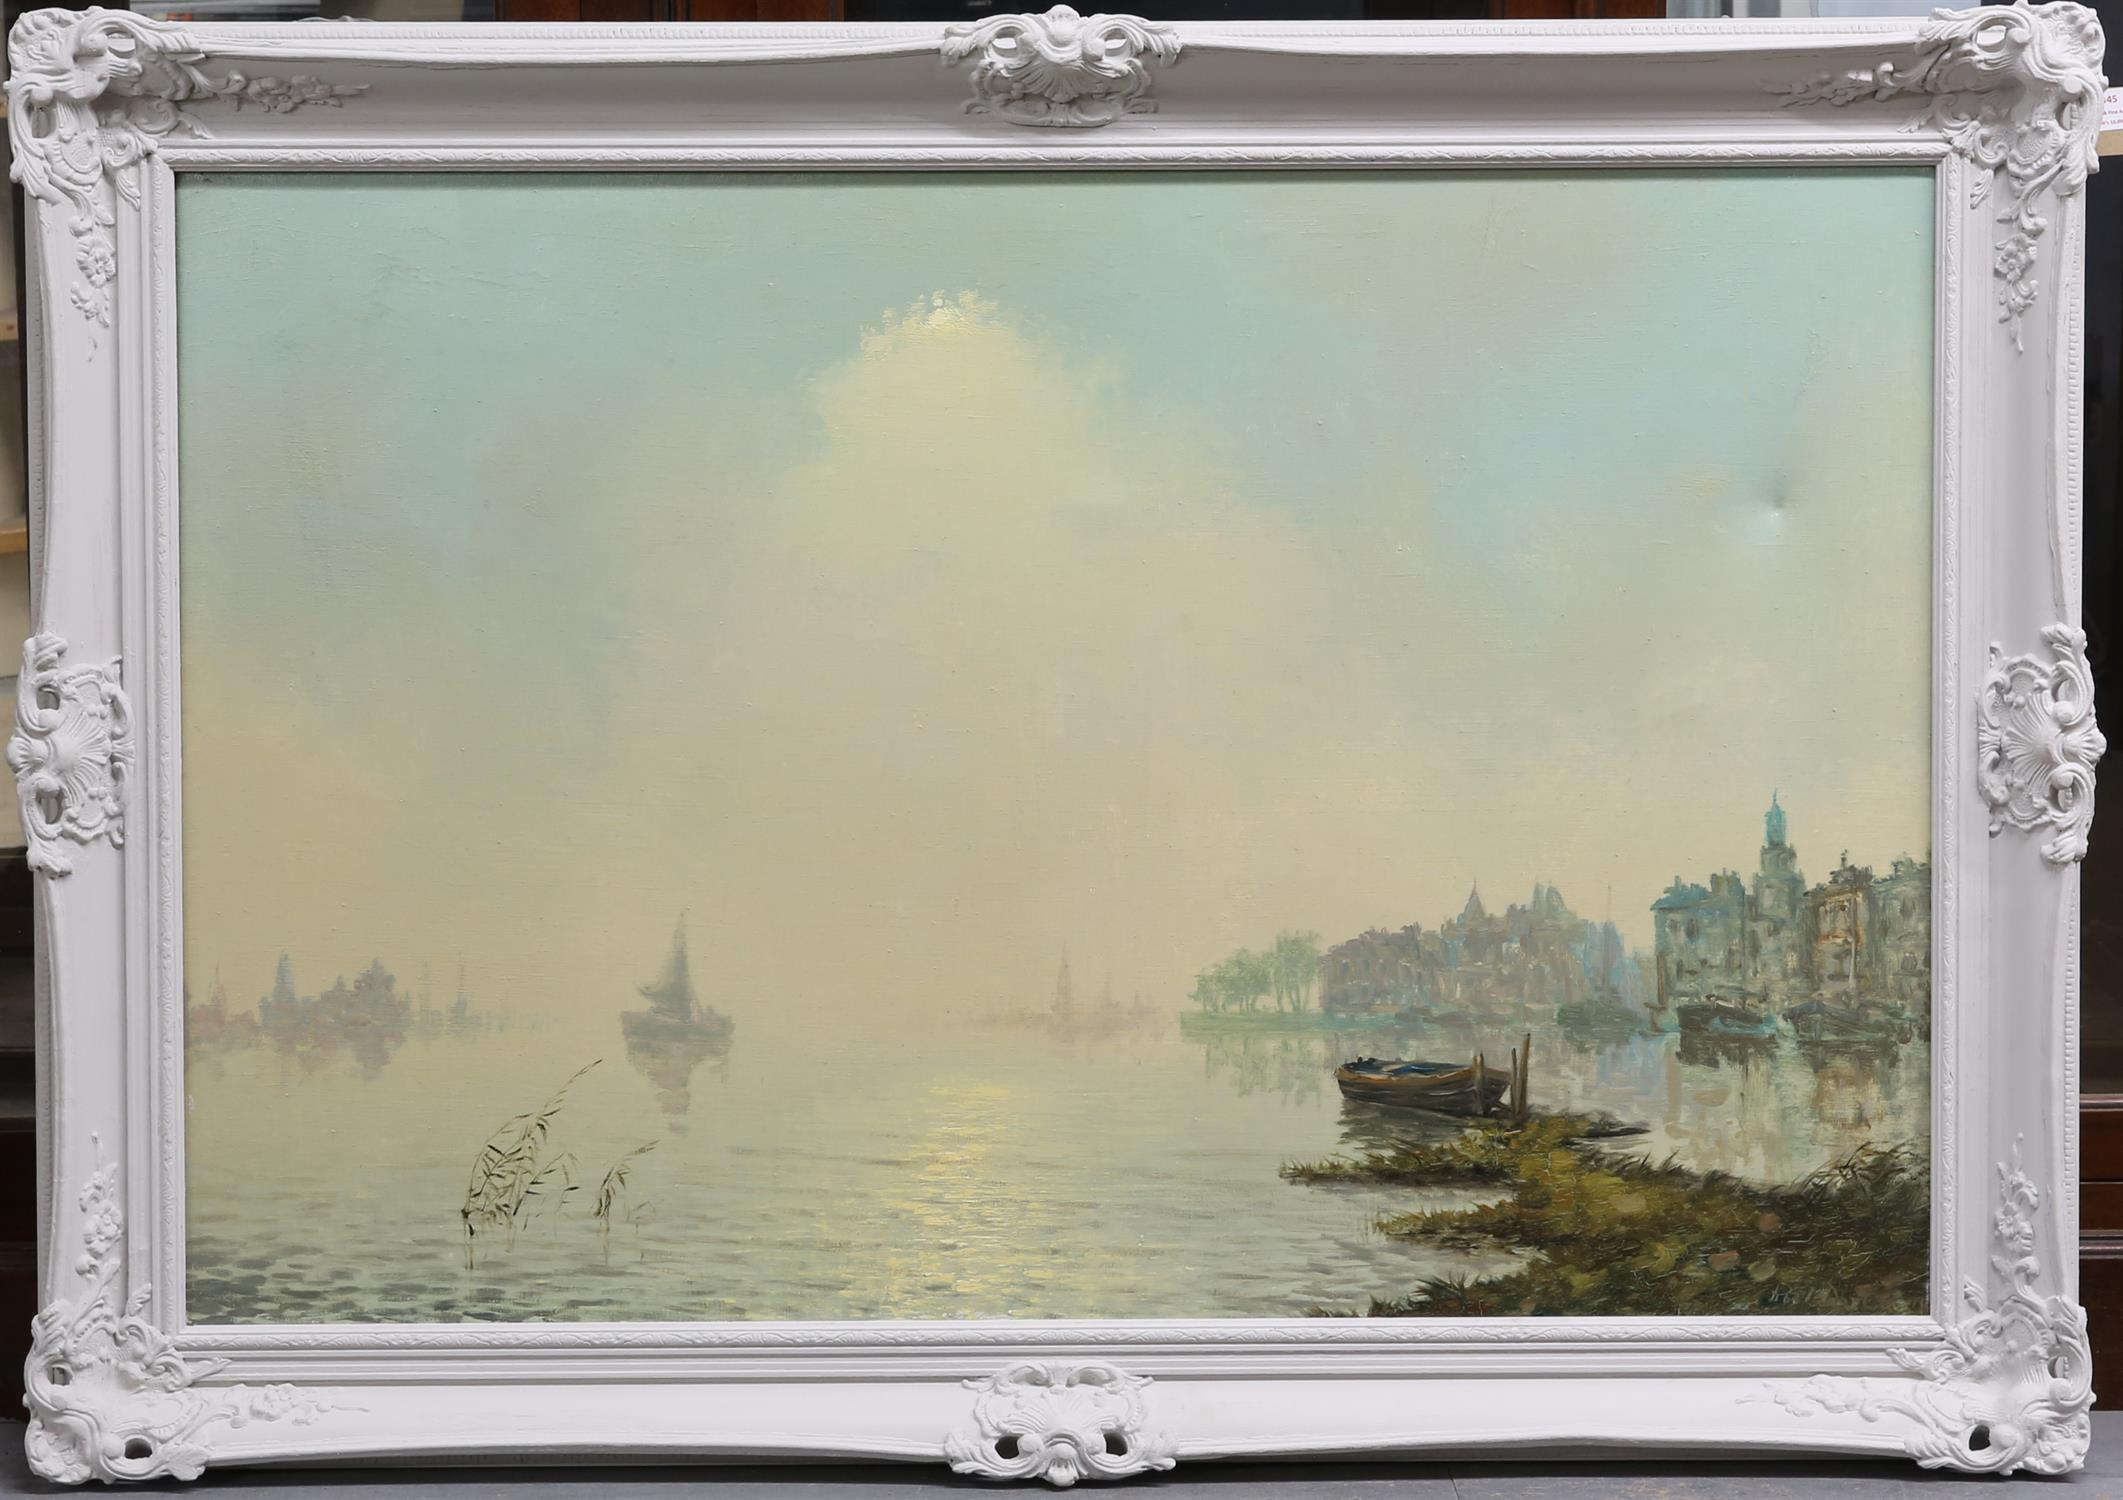 Roel Dozeman (1924-1988). Continental Harbour Scene. Oil on canvas. Signed lower right. 76 x 103cm. - Image 2 of 4